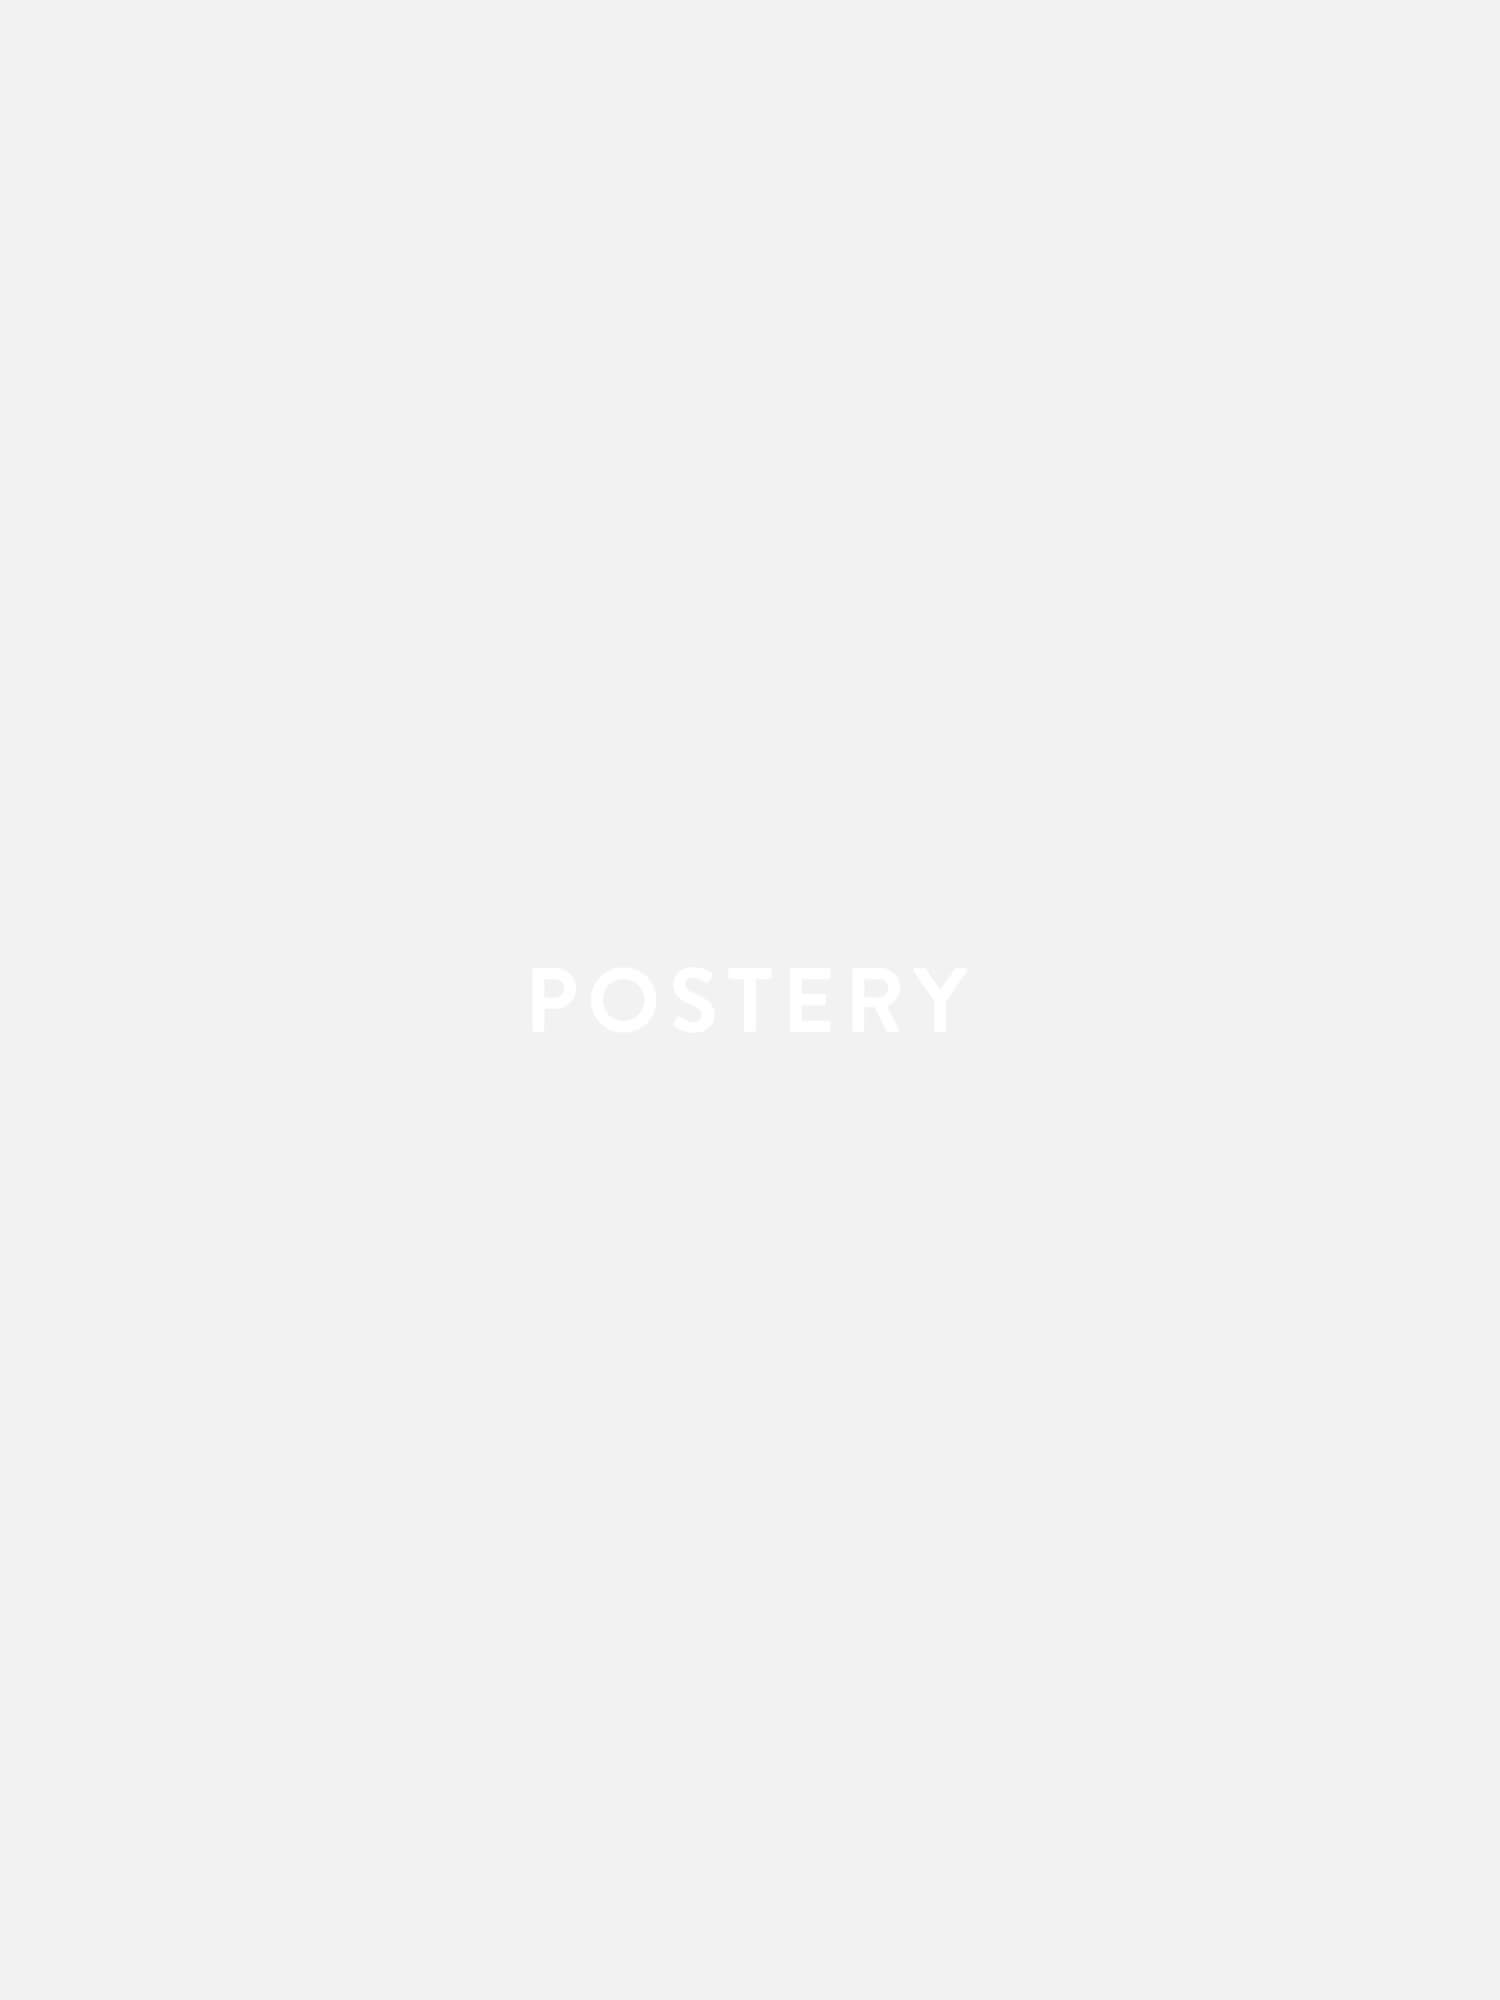 Lunar North Pole Poster